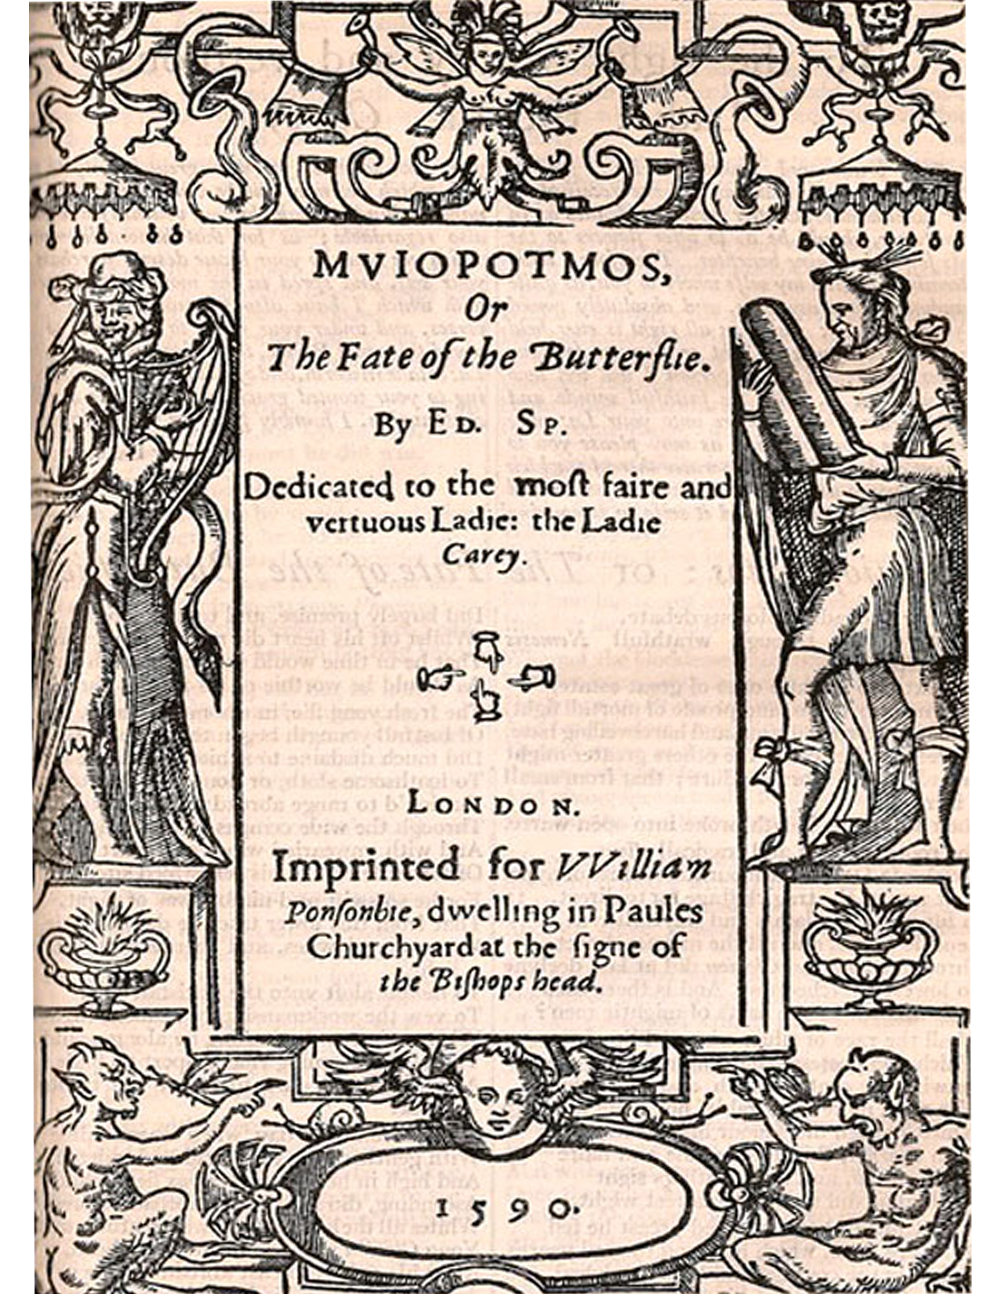 Edmund Spenser, Titlepage to  Muiopotmos  (London, 1590)  Appears:  Writing